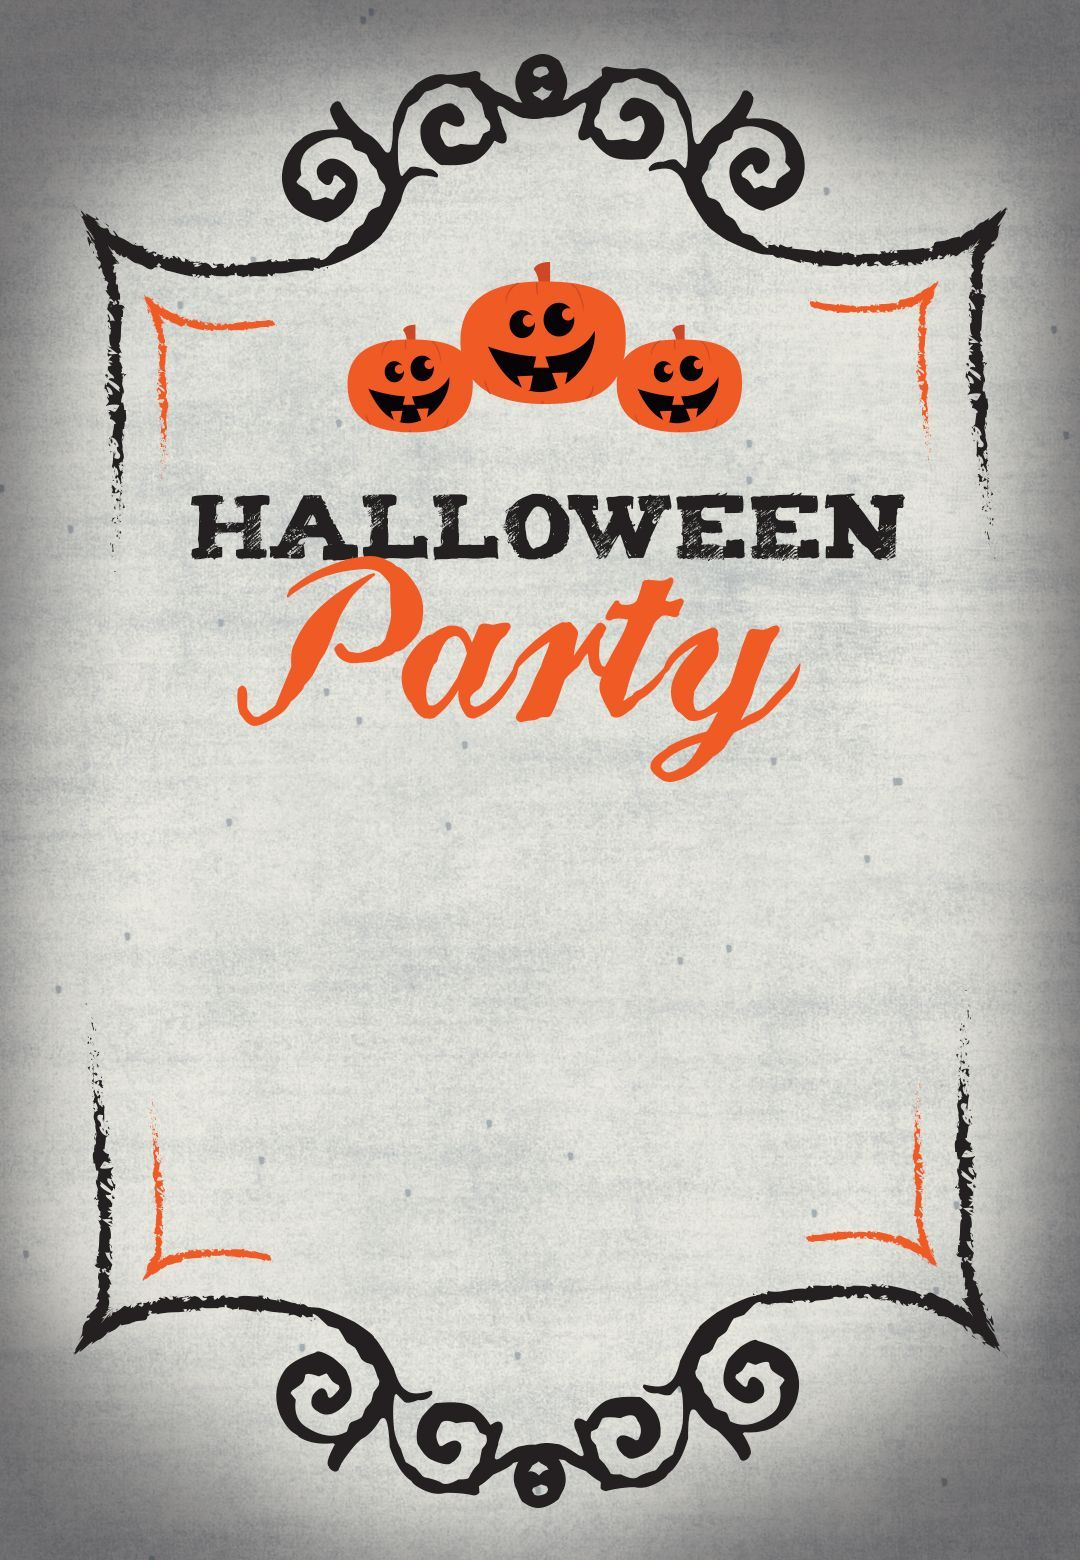 002 Stupendou Free Halloween Party Invitation Template Photo  Templates Download Printable BirthdayFull